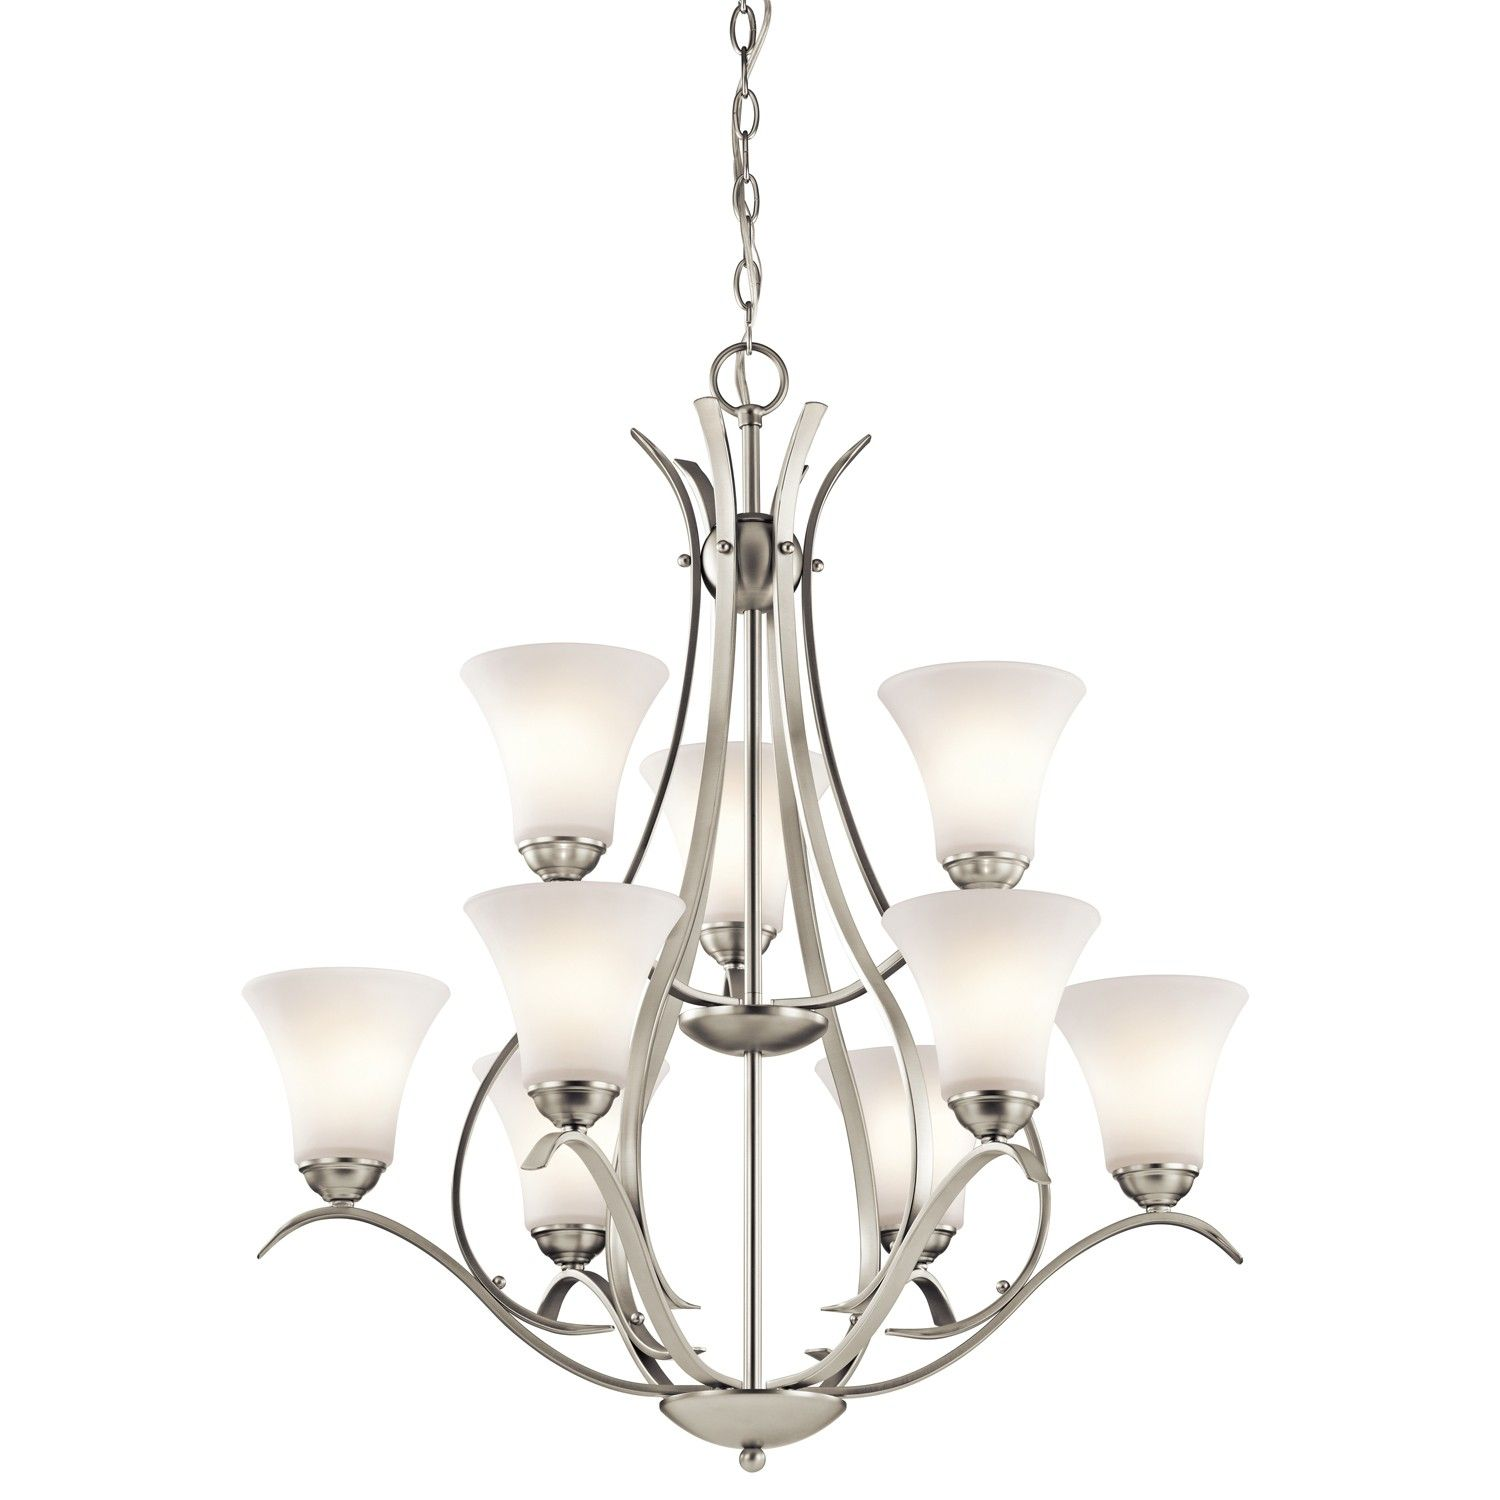 Standard Two Story Foyer Light Keiran 9 Chandelier In Brushed Nickel